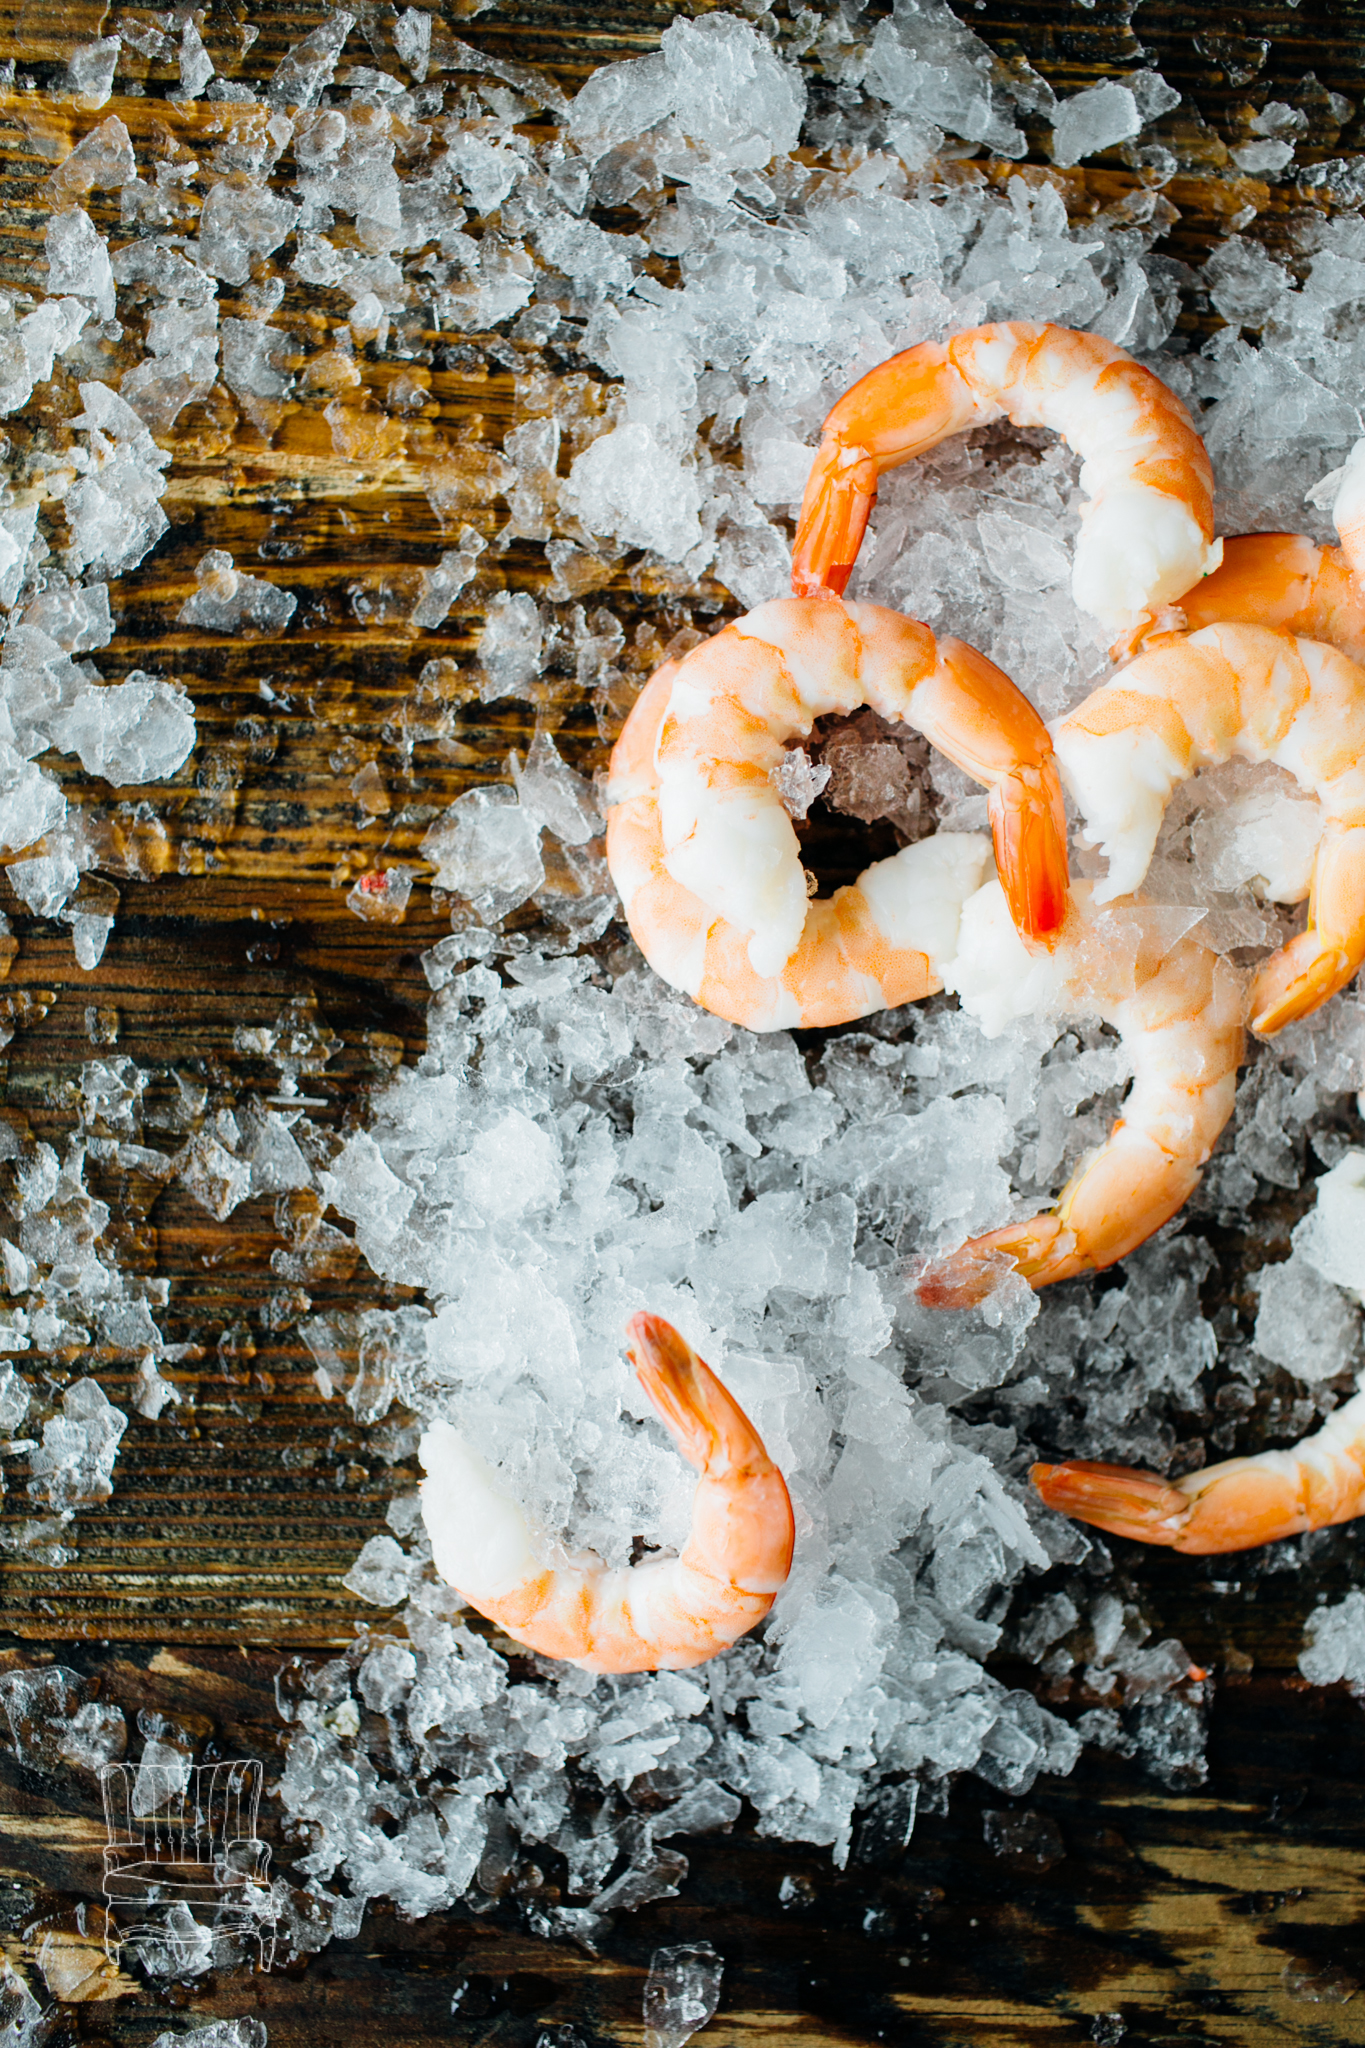 bellingham-marketing-photographer-photo-seafood-haggen-142.jpg